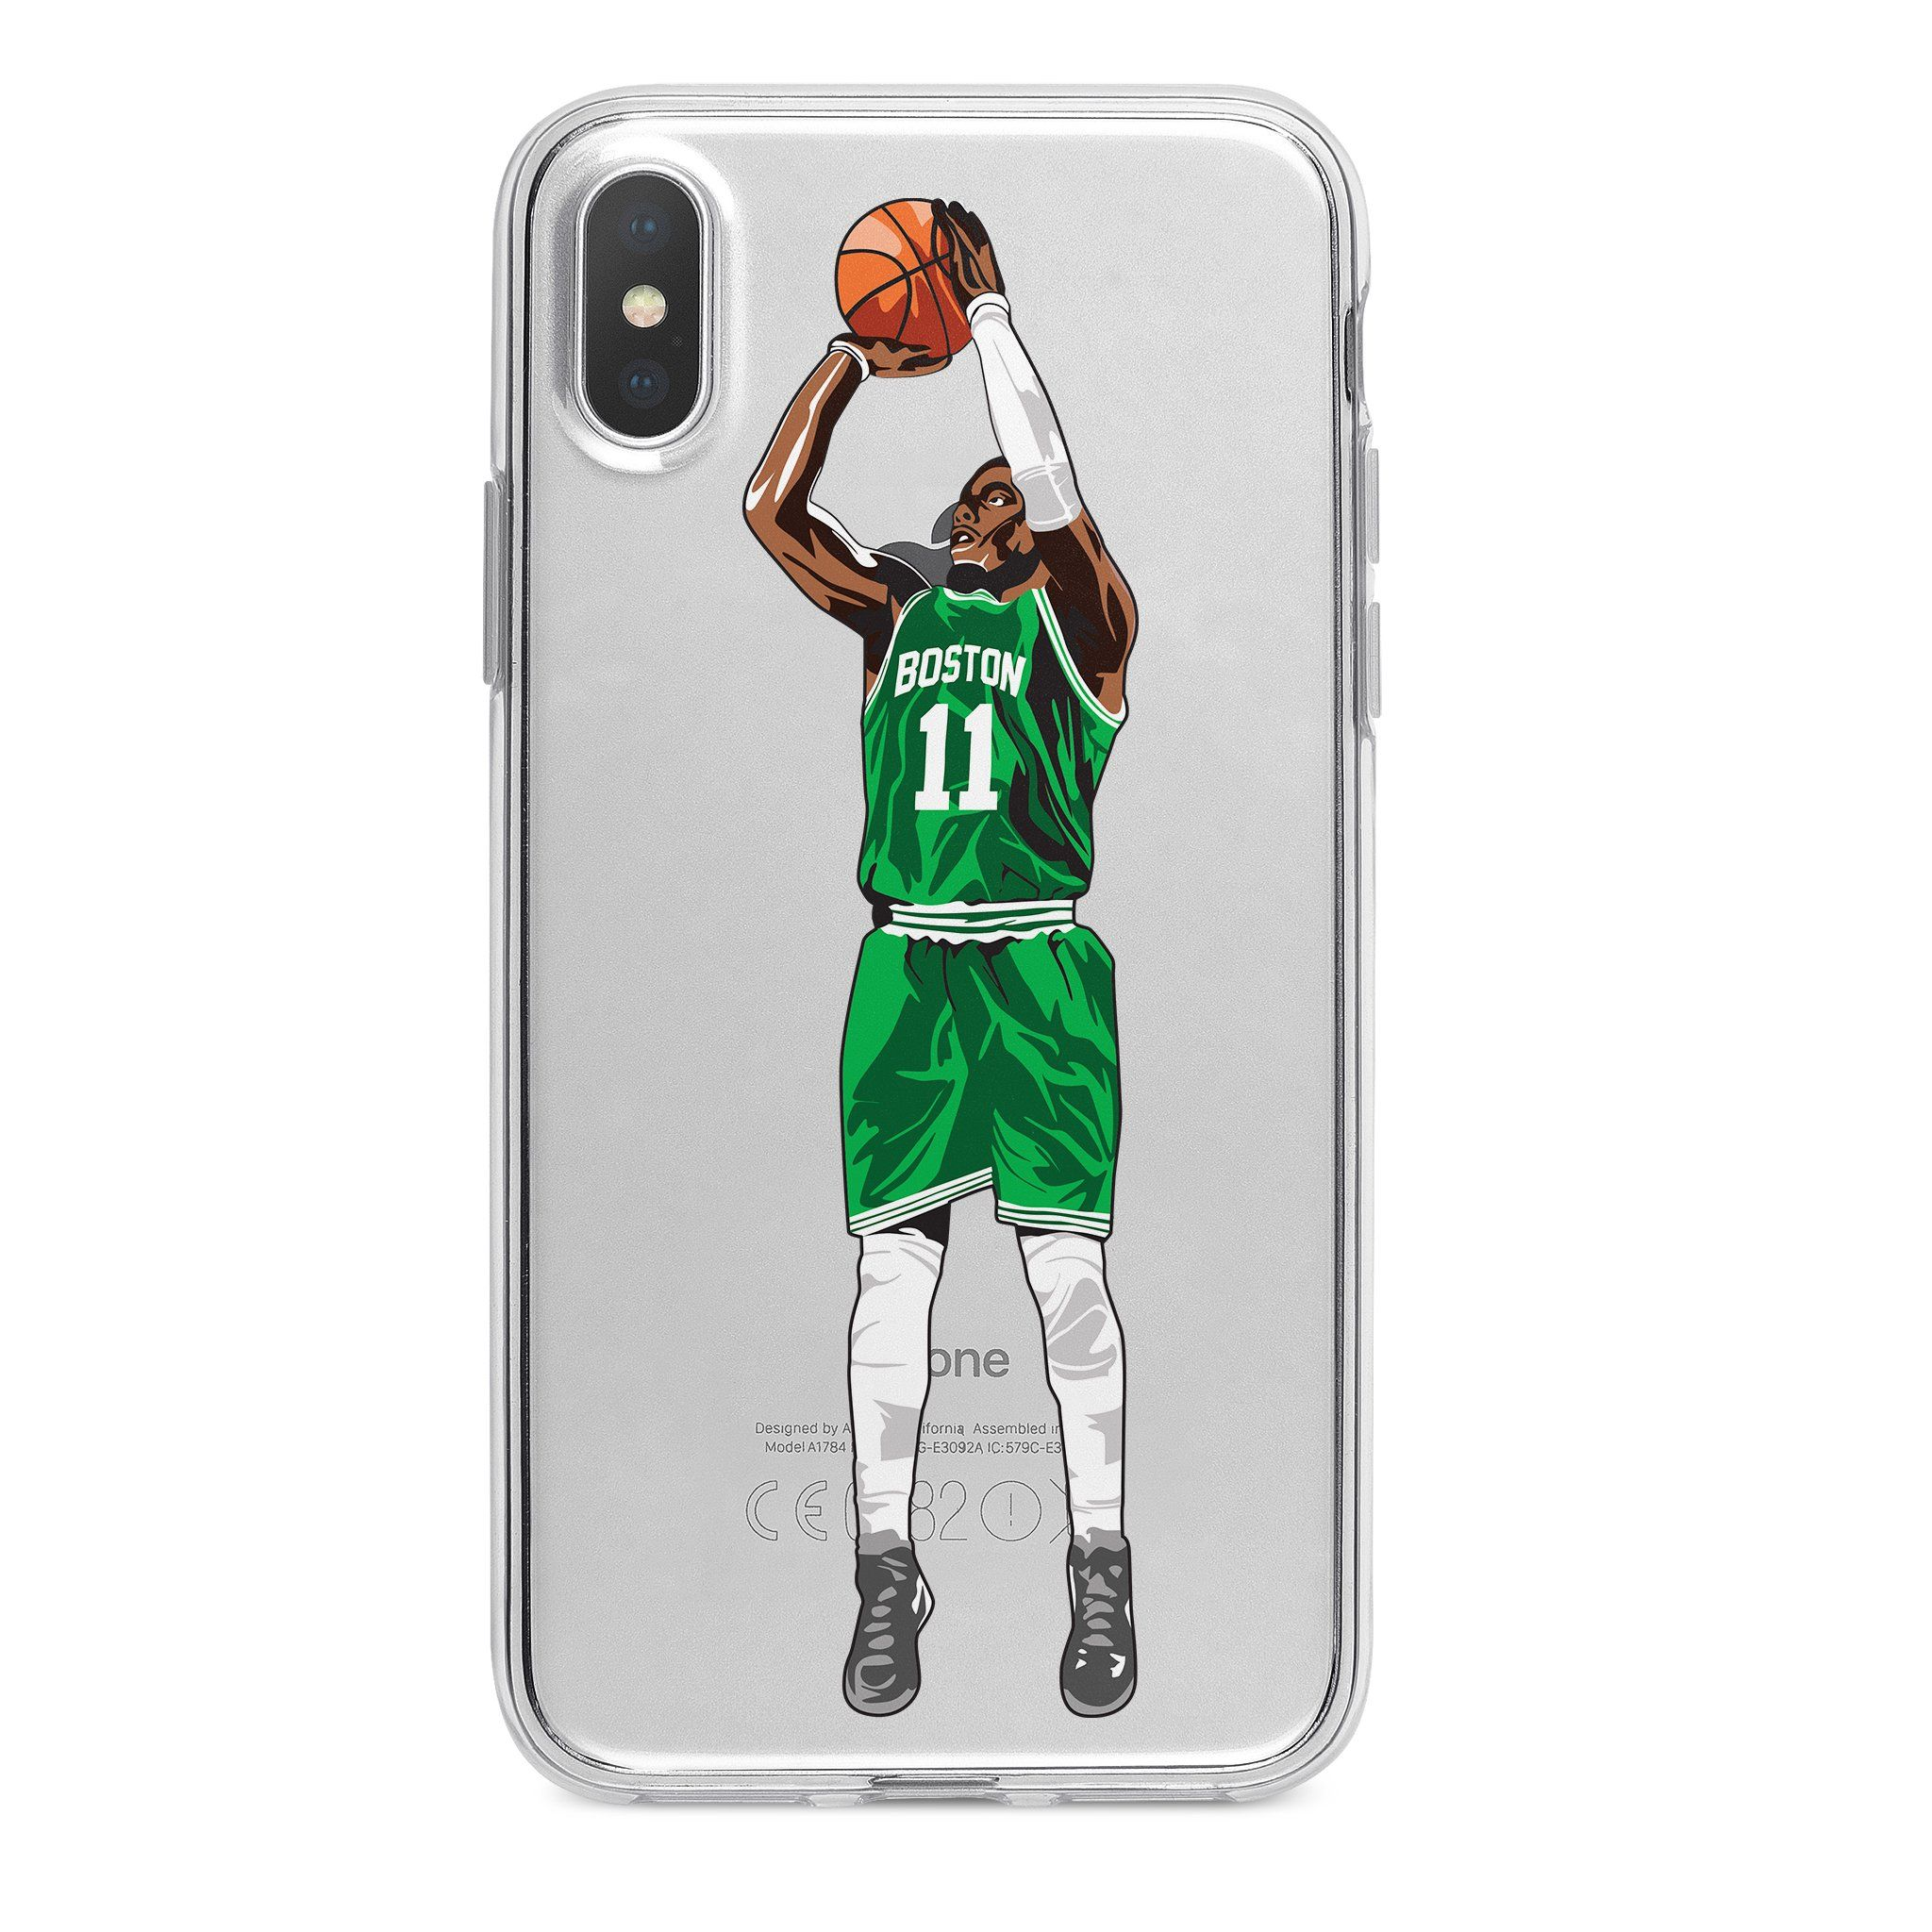 Boston Celtics Kyrie Irving iphone case